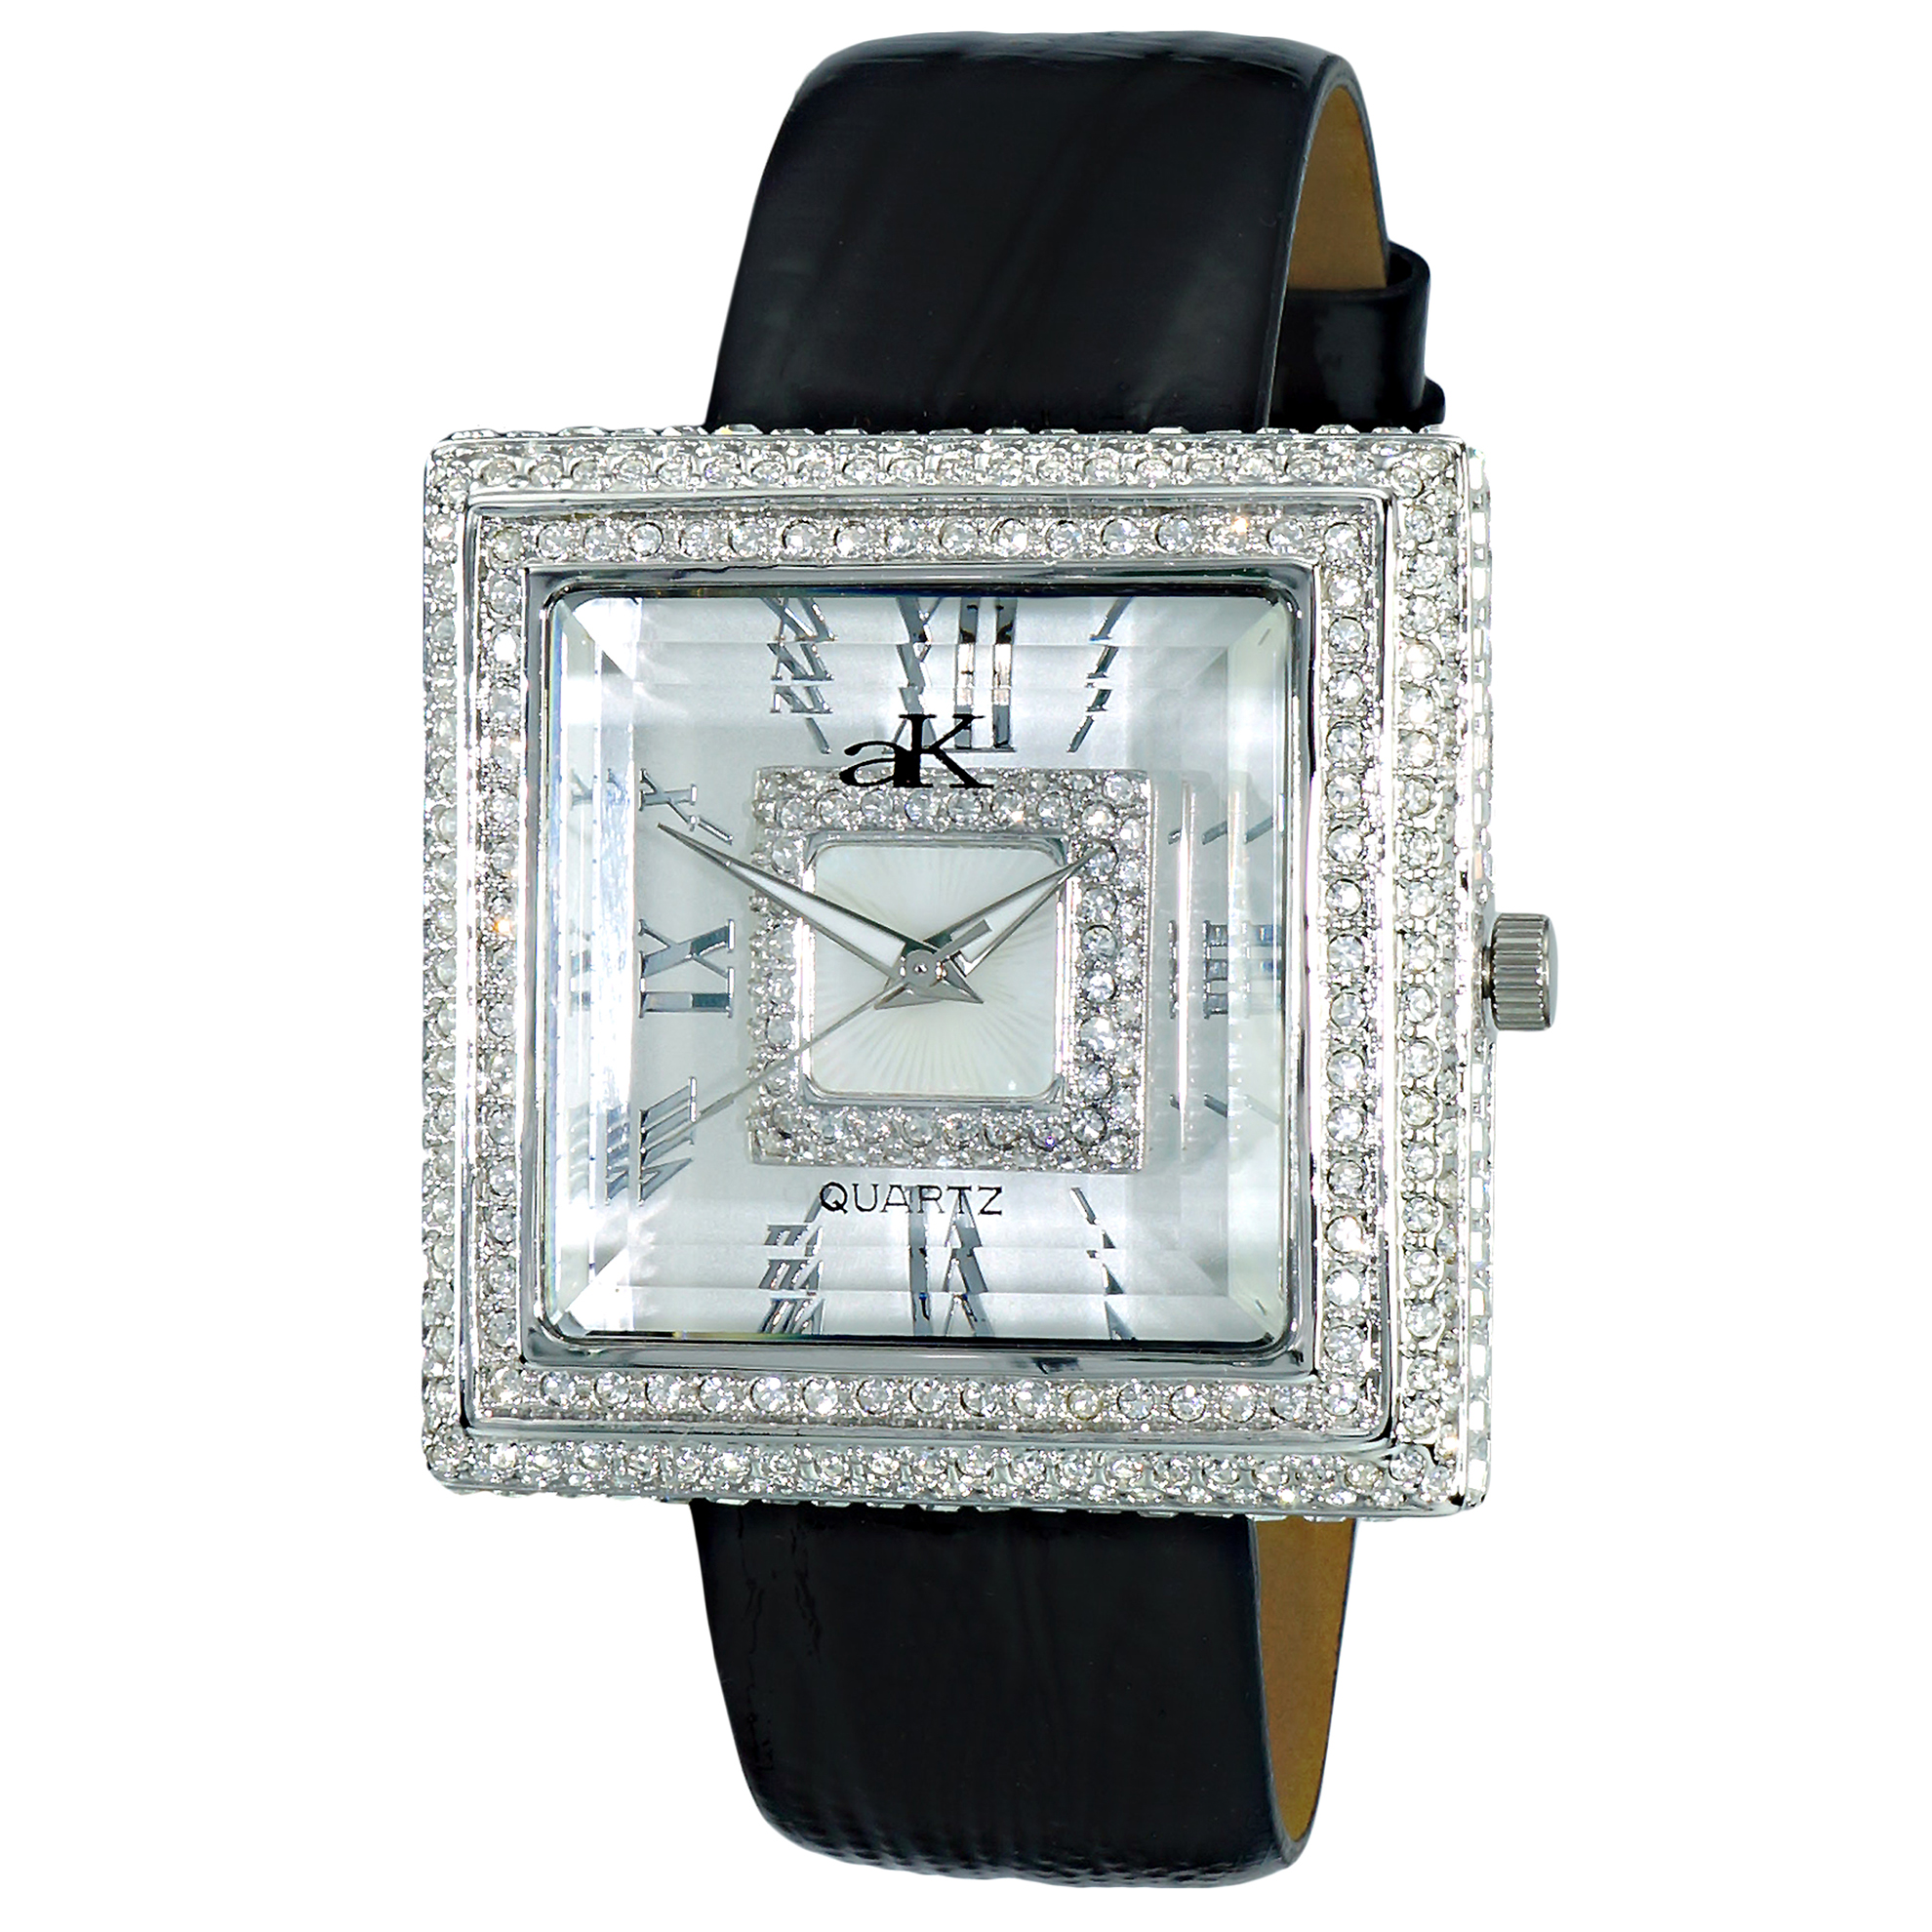 Adee Kaye AK25-L Adee Kaye Ladies Milan Collection 370 Austrian Crystals White MOP Dial Black Leather Band